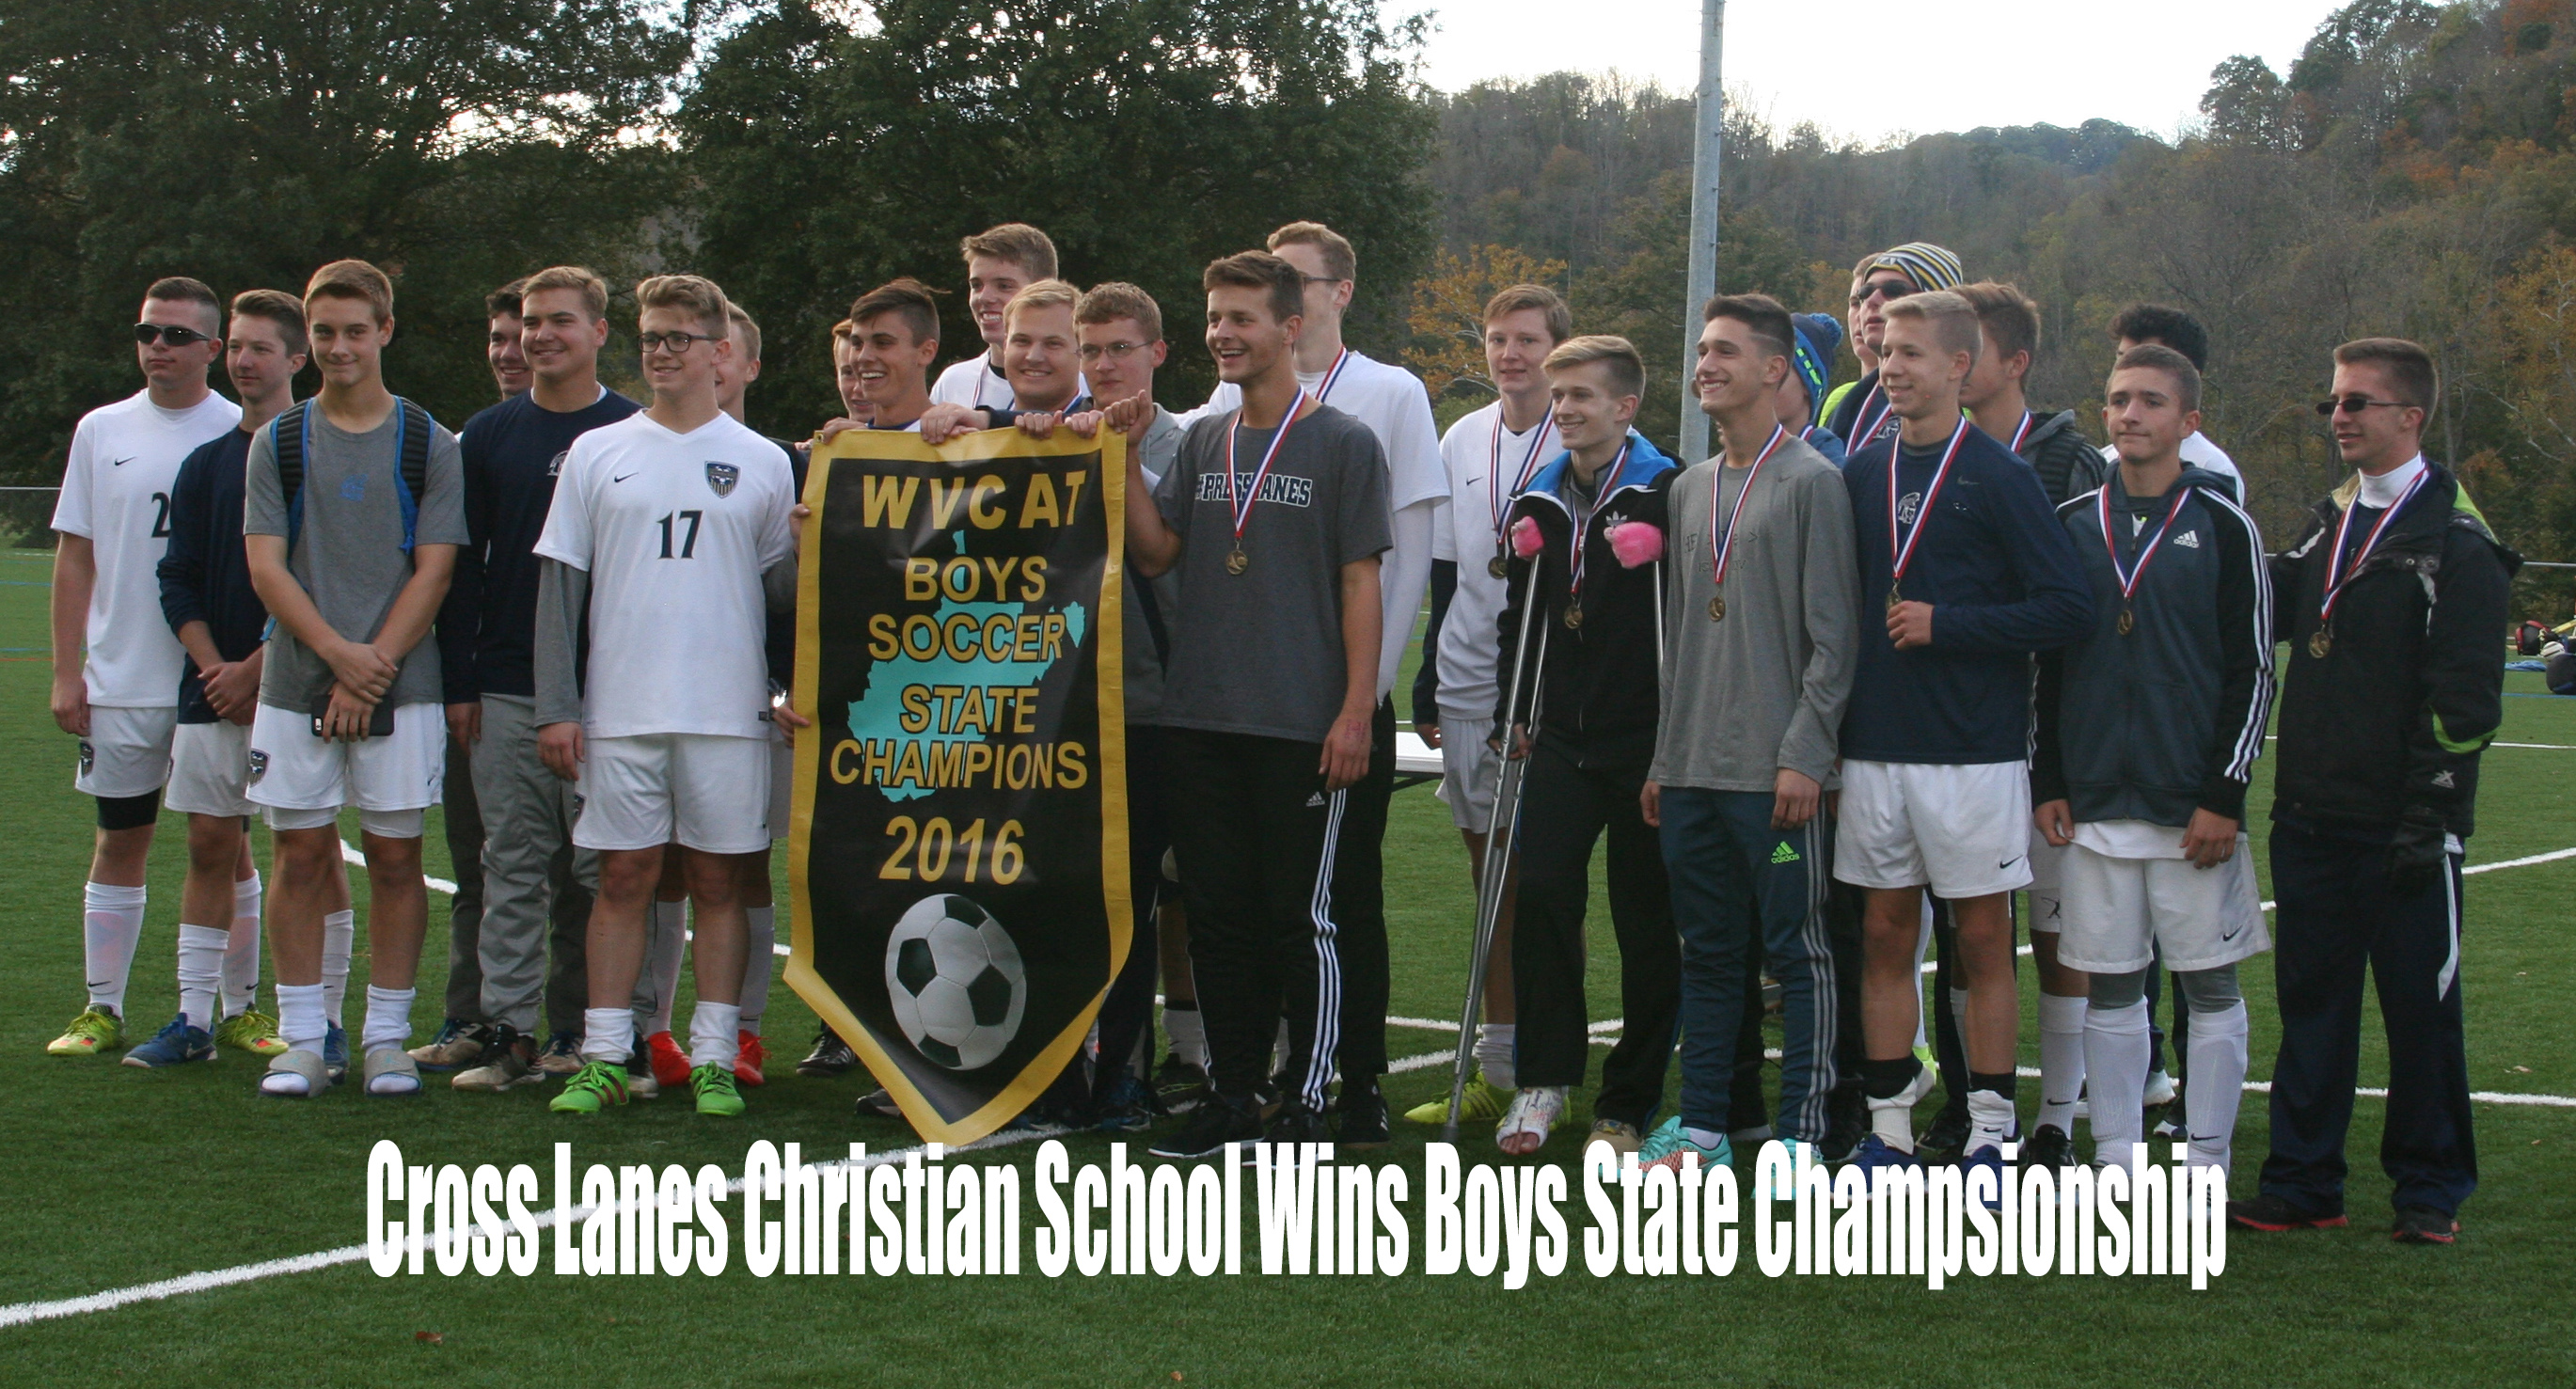 CLCS Varsity Boys Soccer Team Brings Home First Place